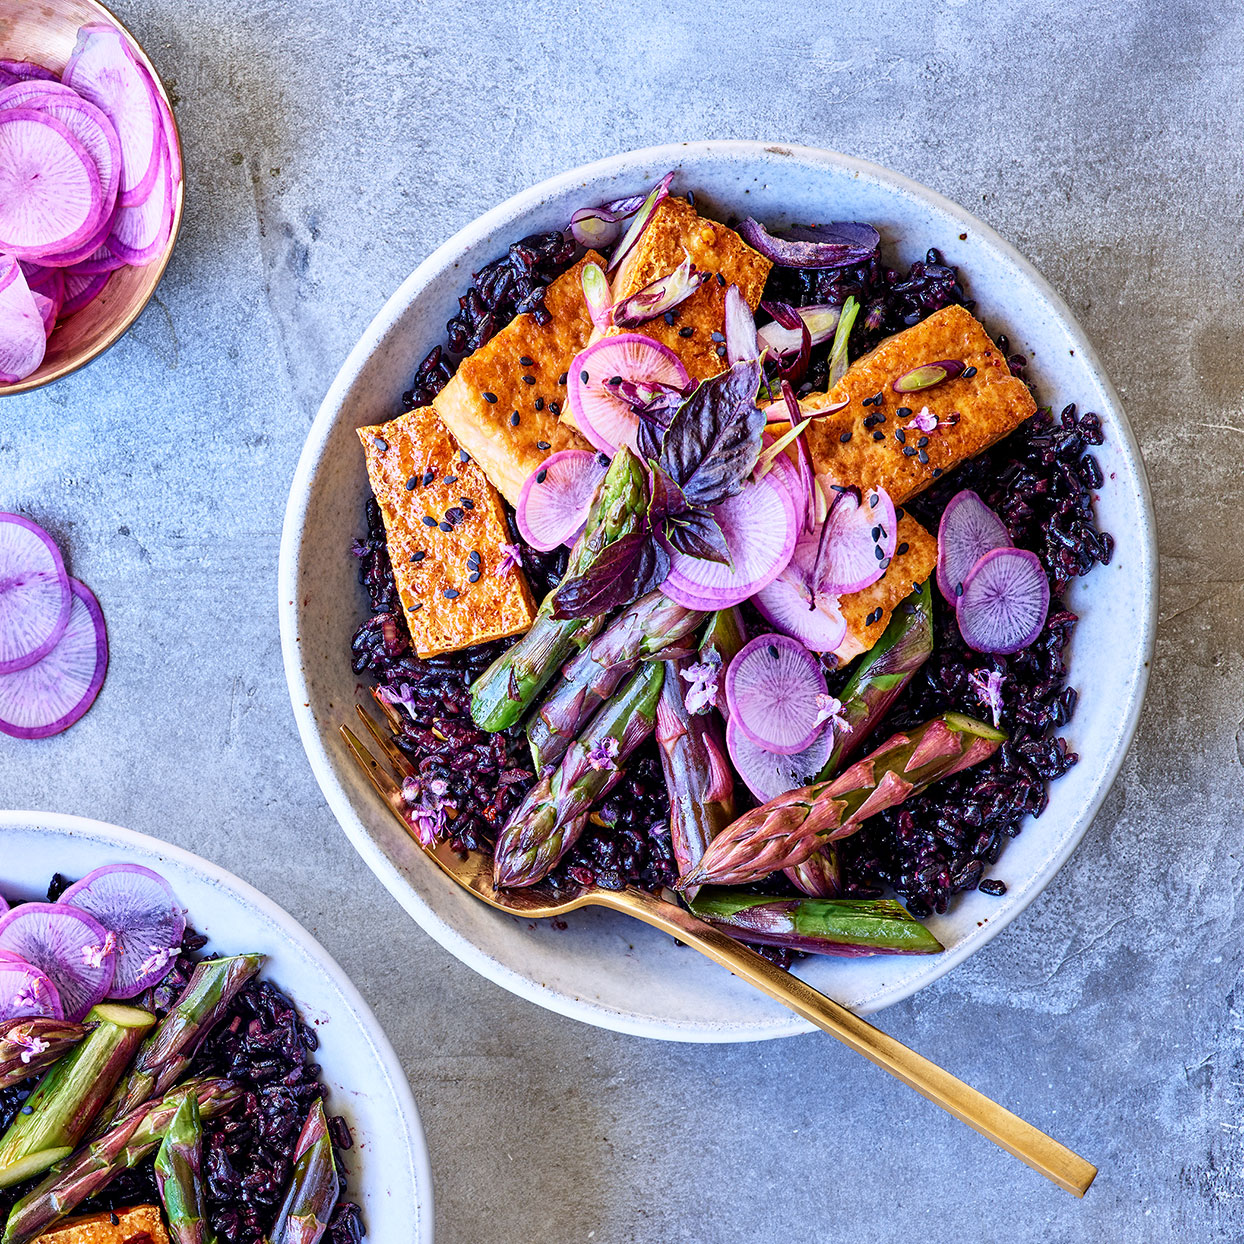 Coconut Black Rice Bowls with Tofu & Purple Asparagus Trusted Brands